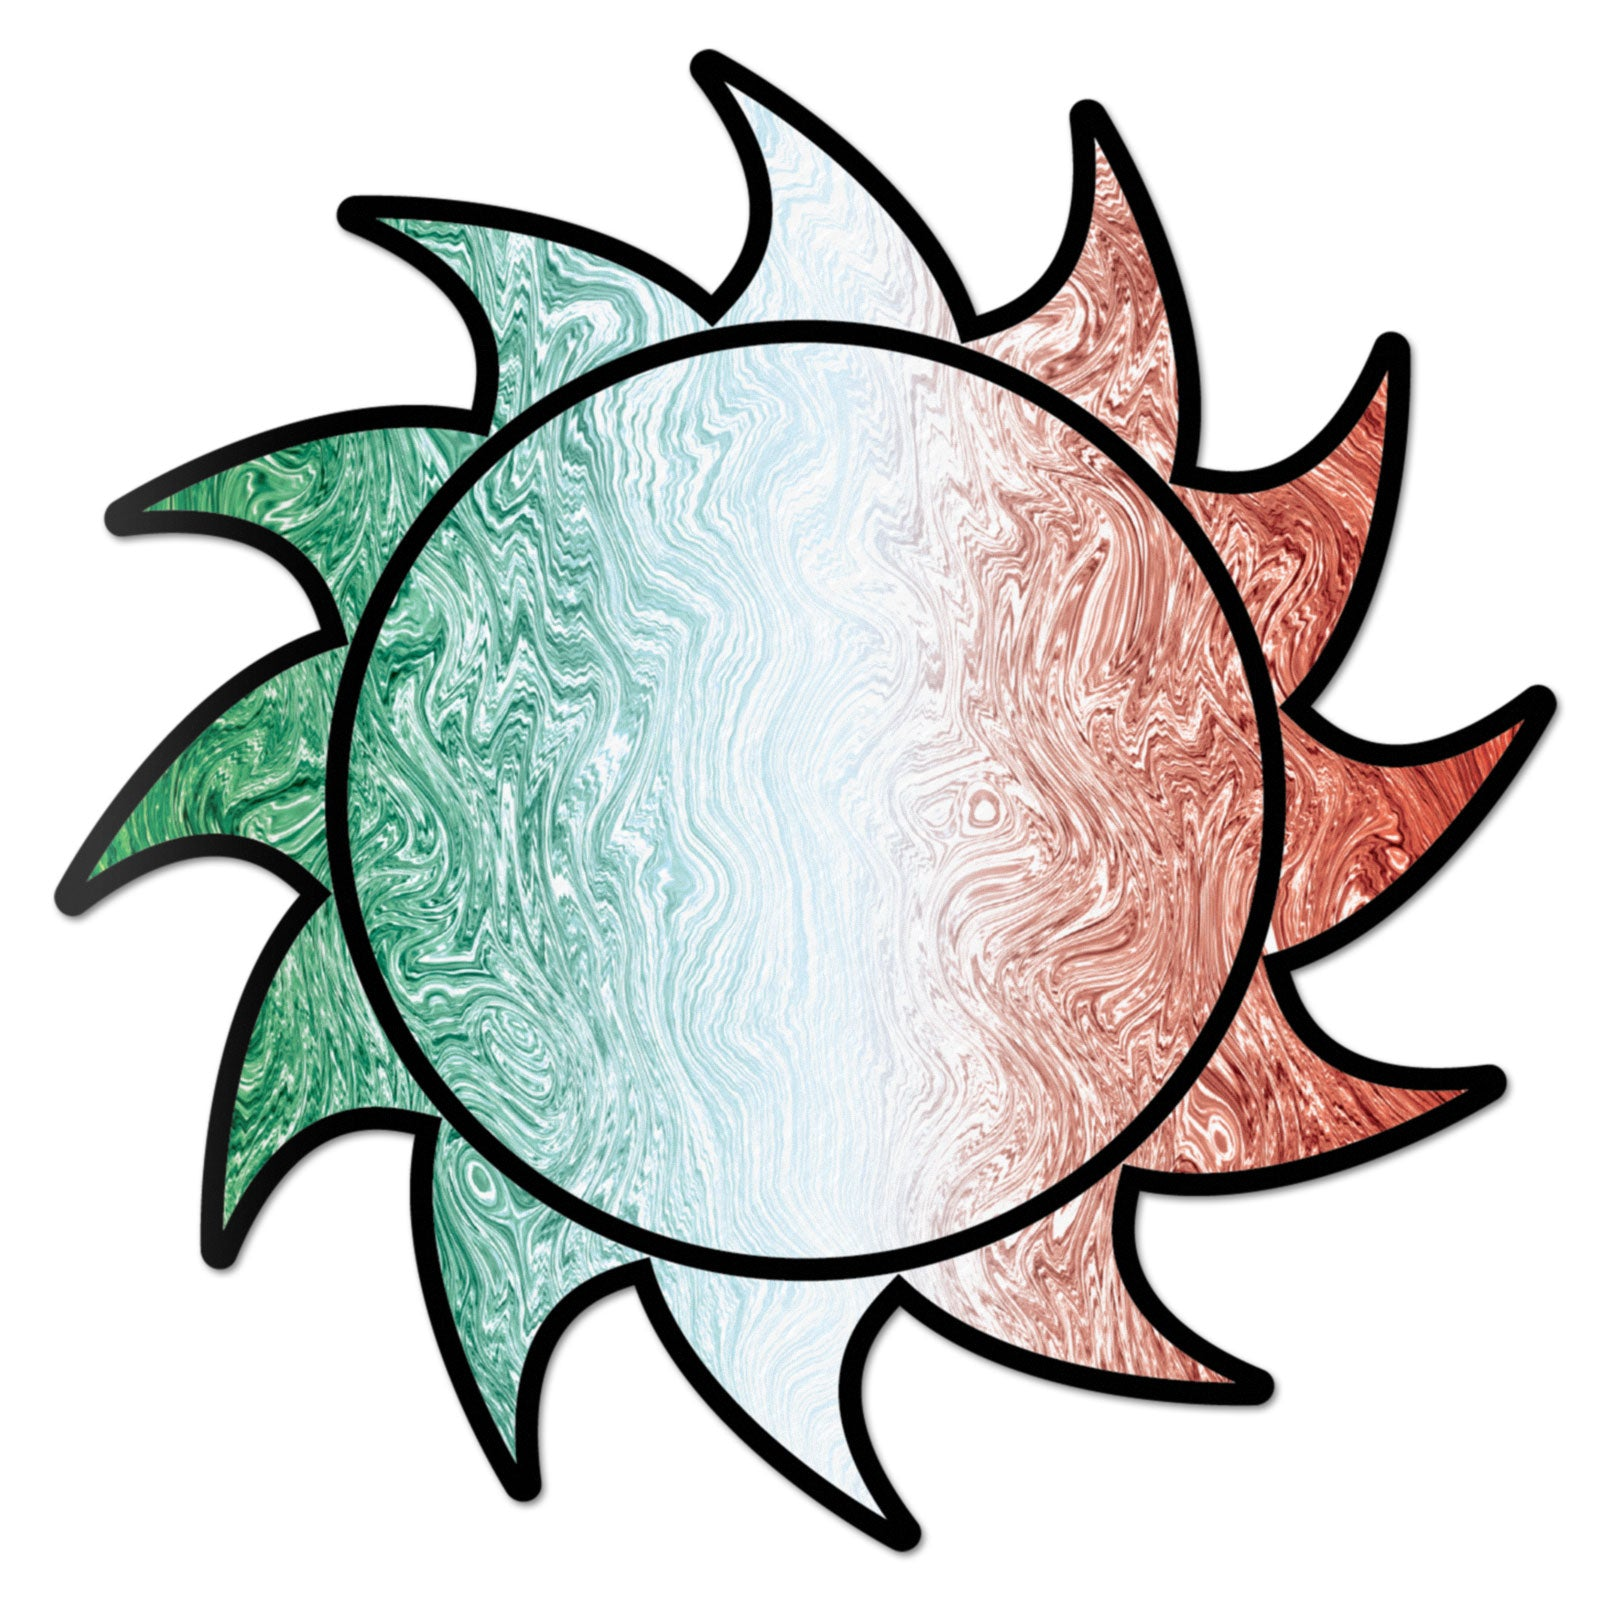 Sun Decal Mexico Swirl Sticker Vinyl Rear Window Car Truck Large Sun Solar Wall Water and Fade Resistant 6 Inches